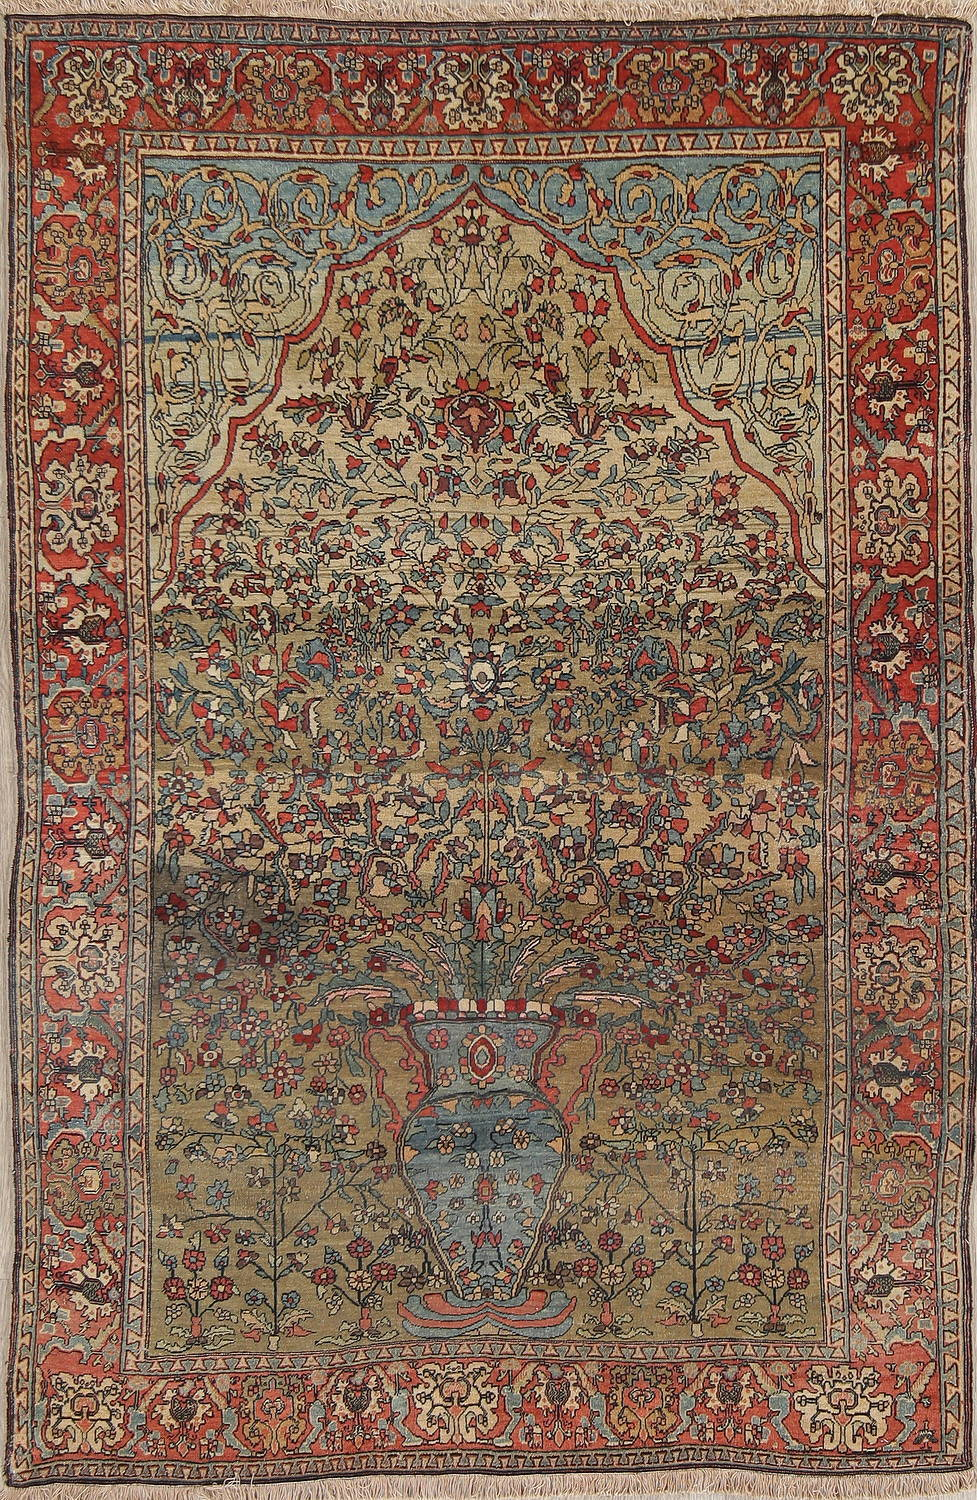 Antique Green Pictorial Kashan Mohtasham Persian Area Rug 4x6 image 1